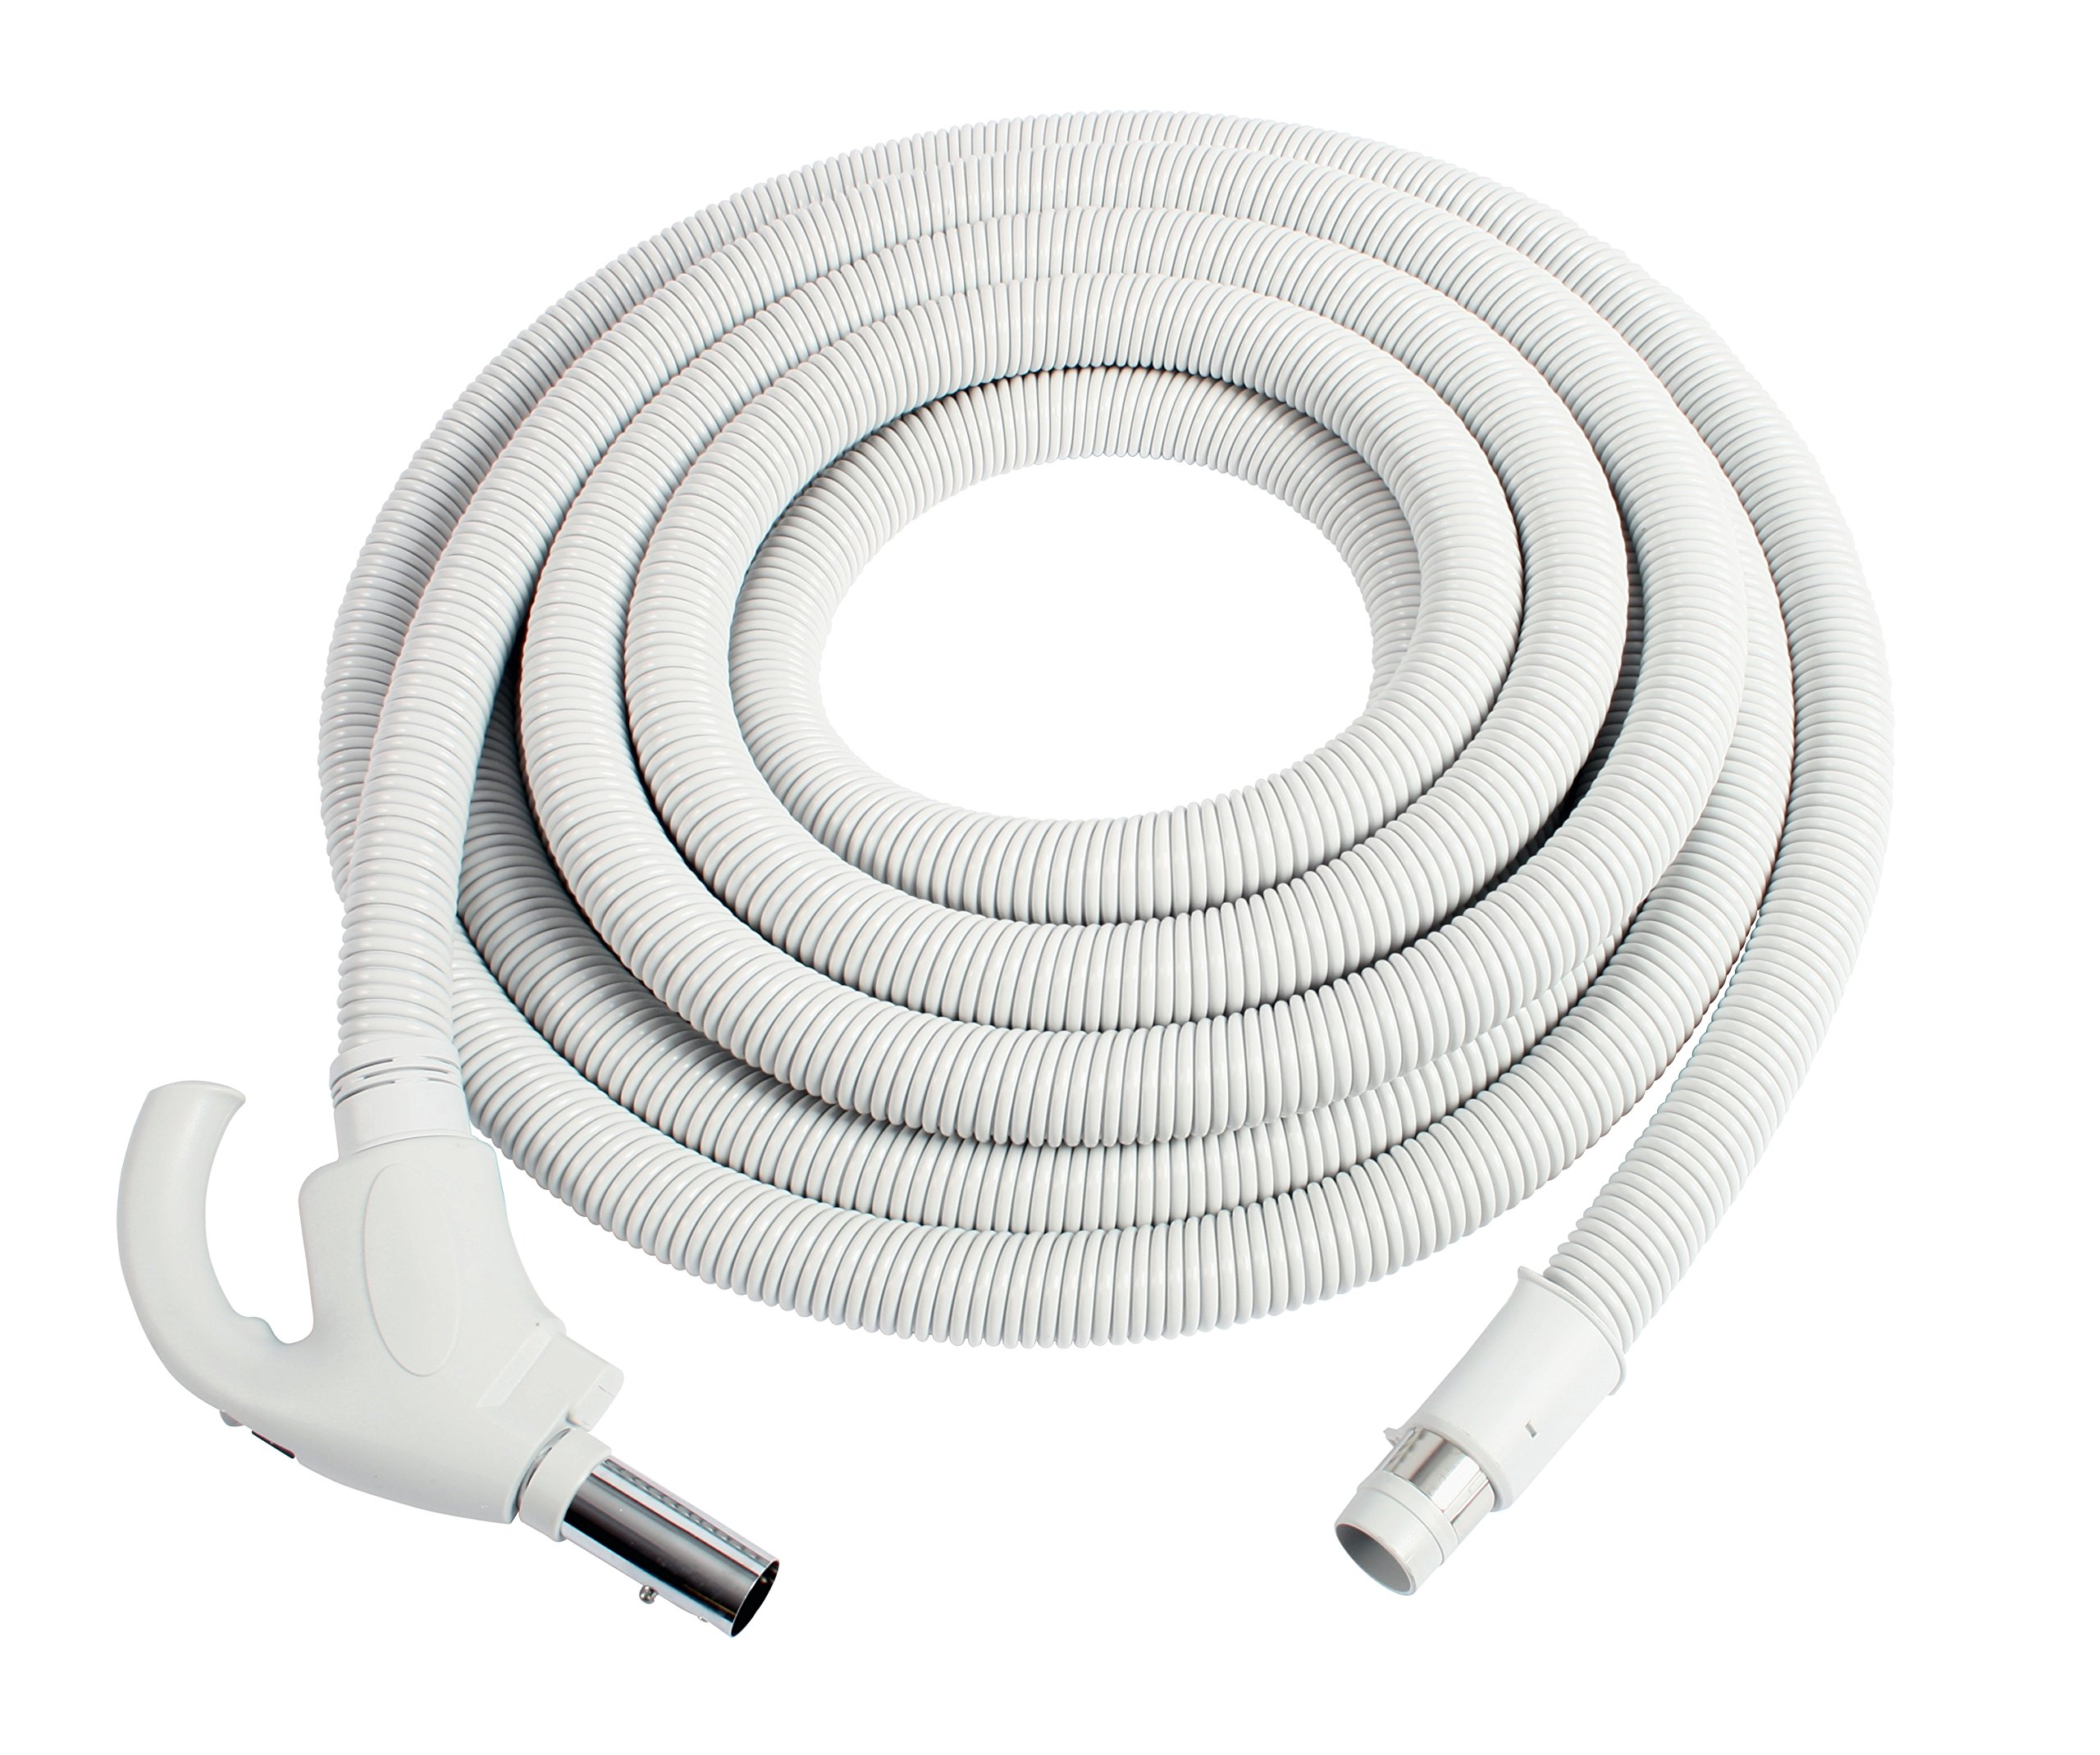 Cen-Tec Systems 91353 Central Vacuum Hose, 40 Ft, Light Gray by Centec Systems